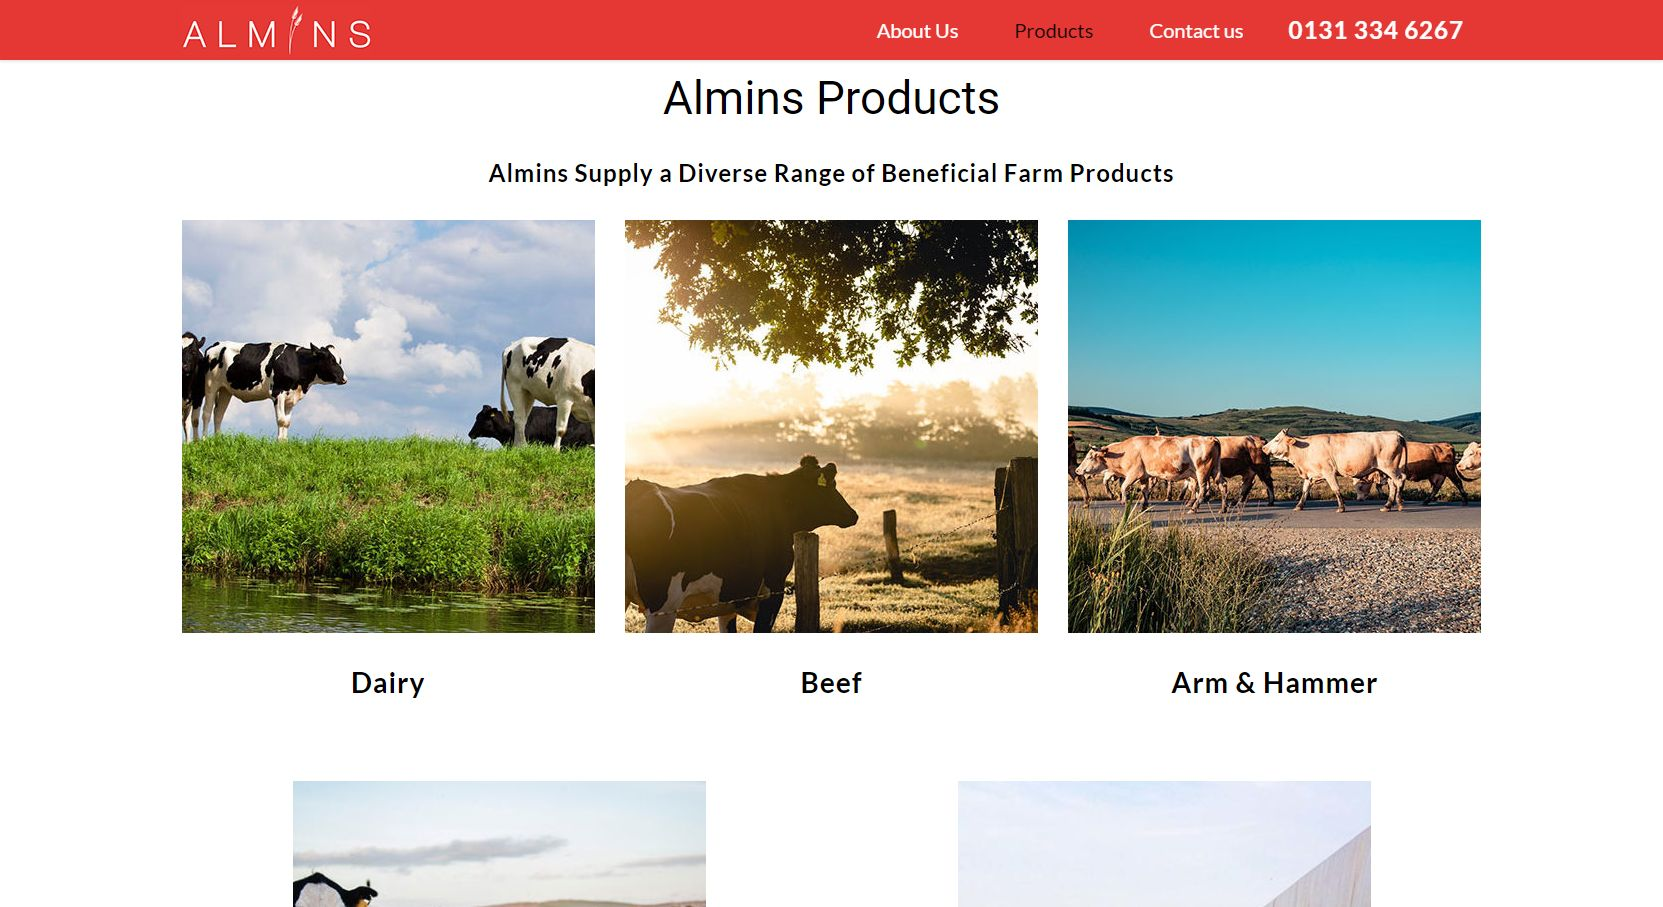 Almins Products